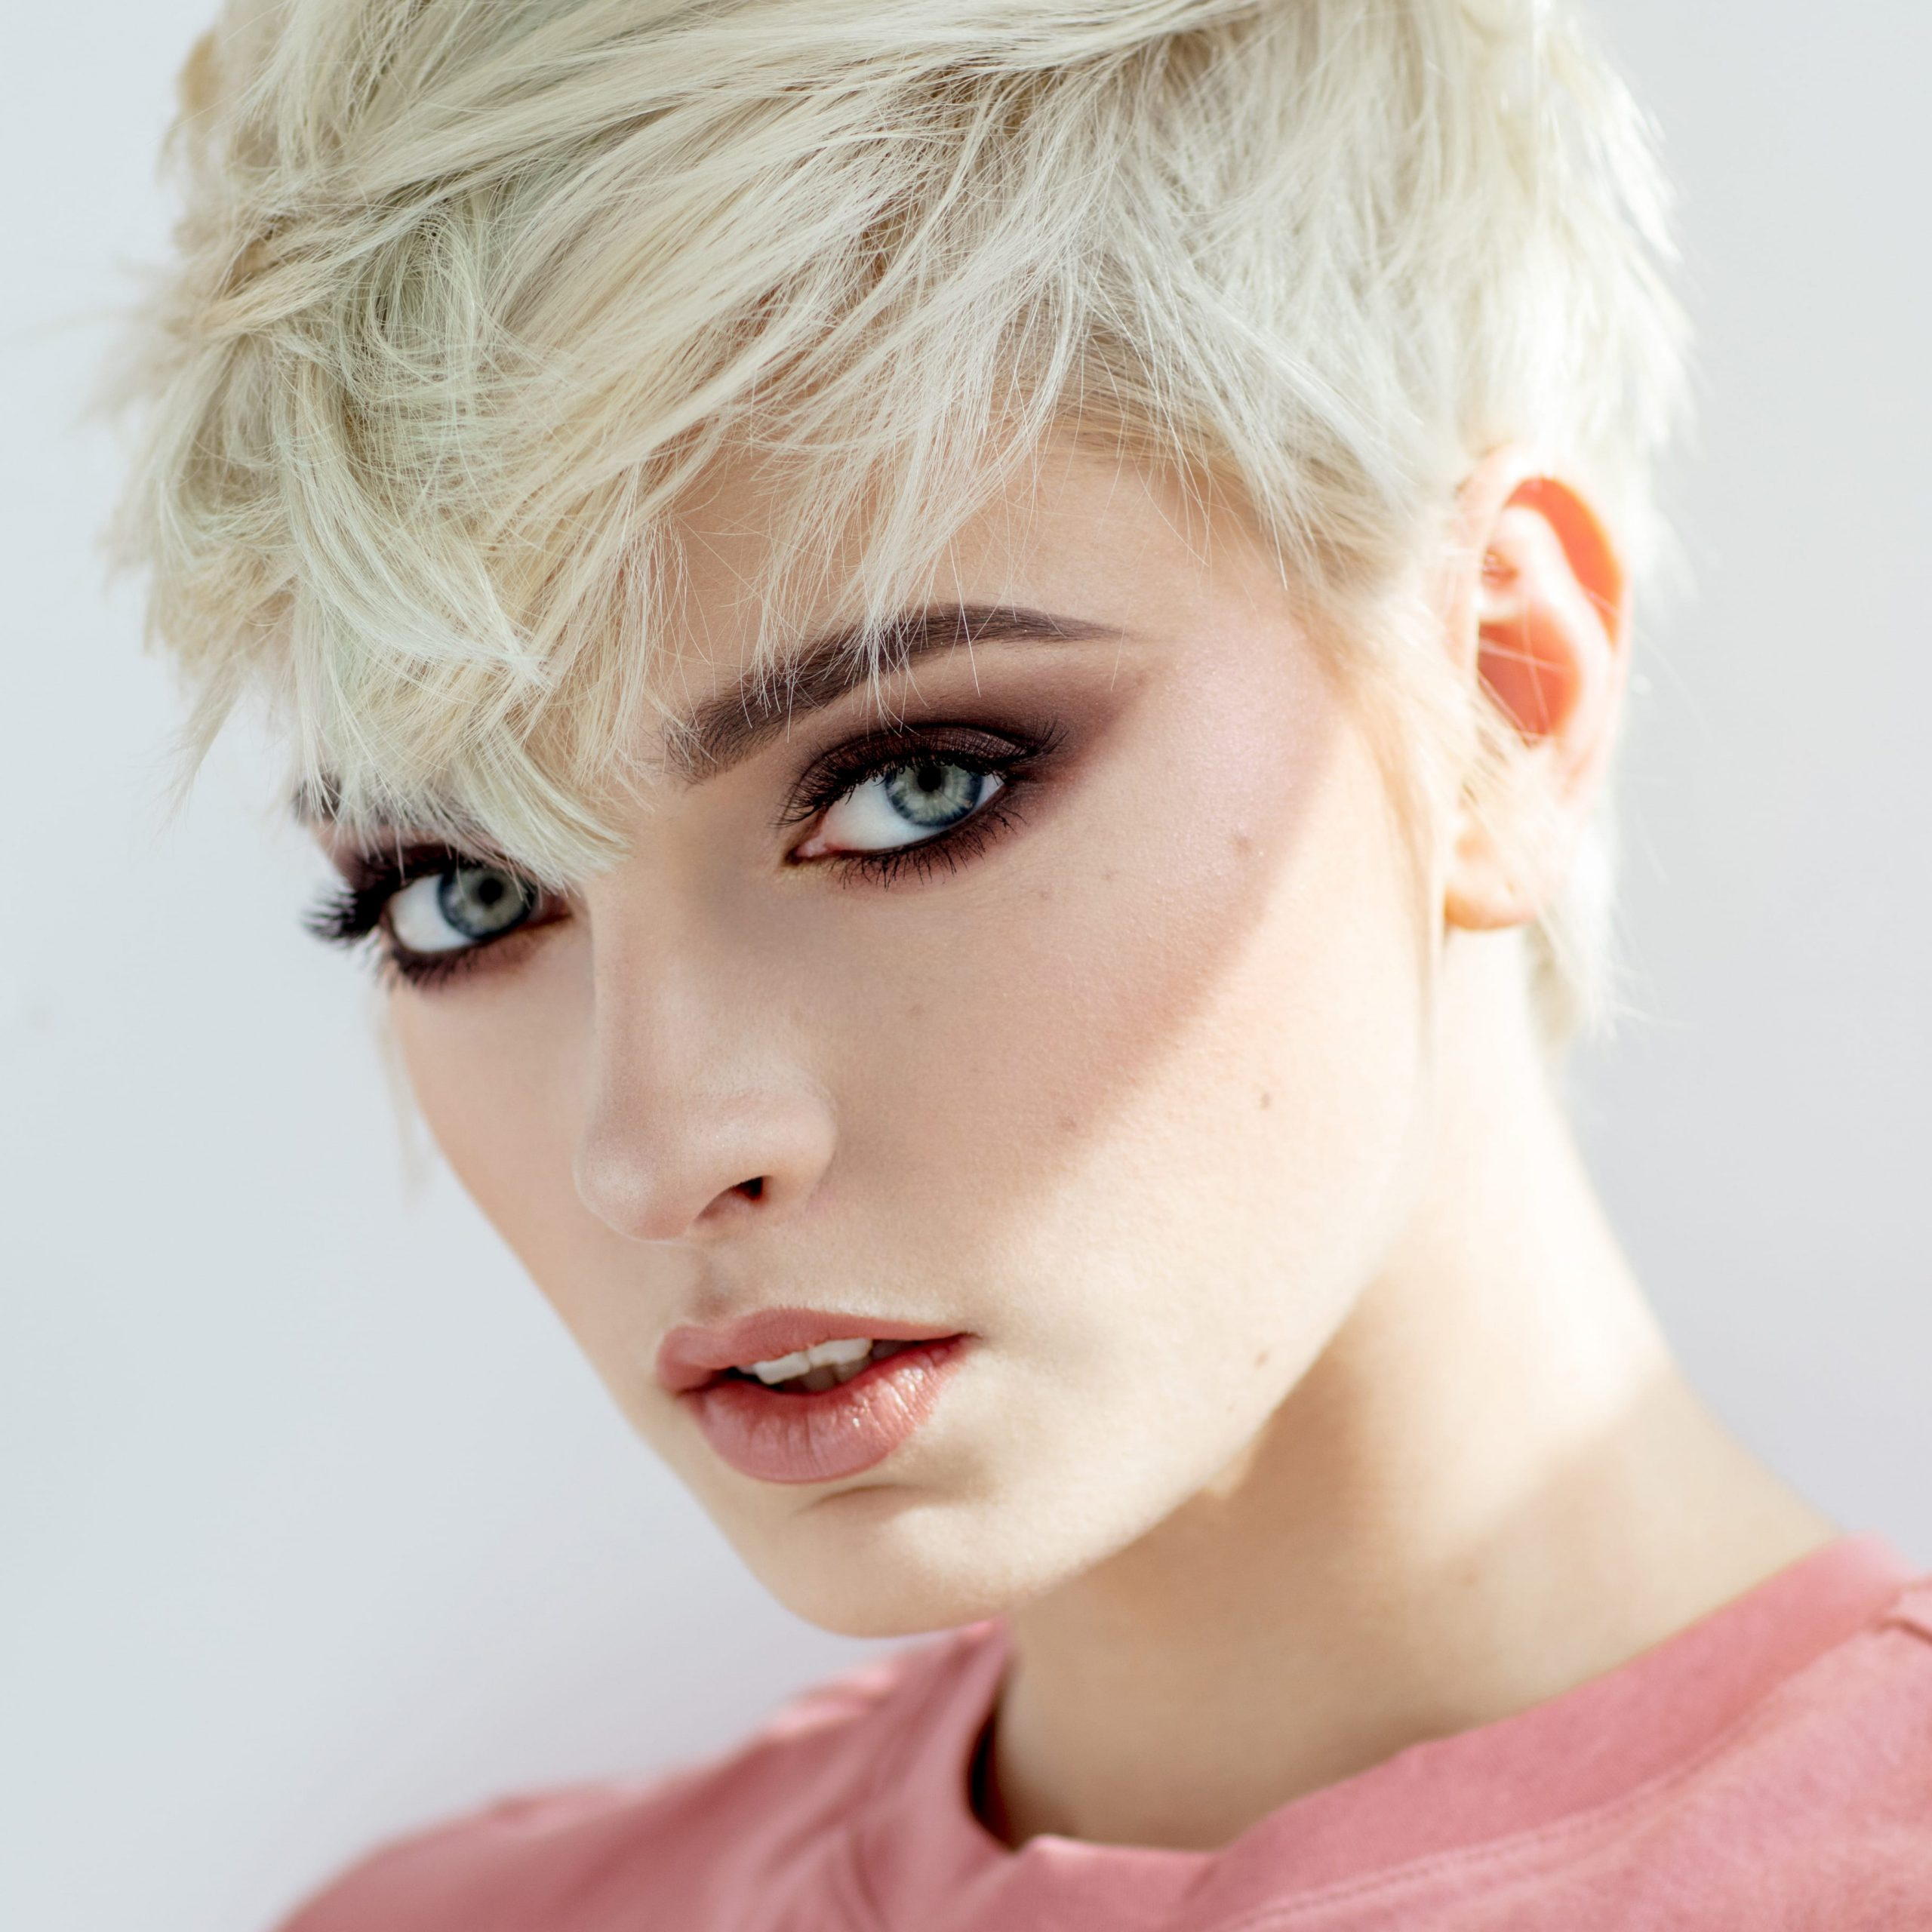 50+ Latest Short Hairstyles For Women For 2021   Haircut Pertaining To Half Bob Half Pixie Hairstyles With Cool Blonde Balayage (View 10 of 20)